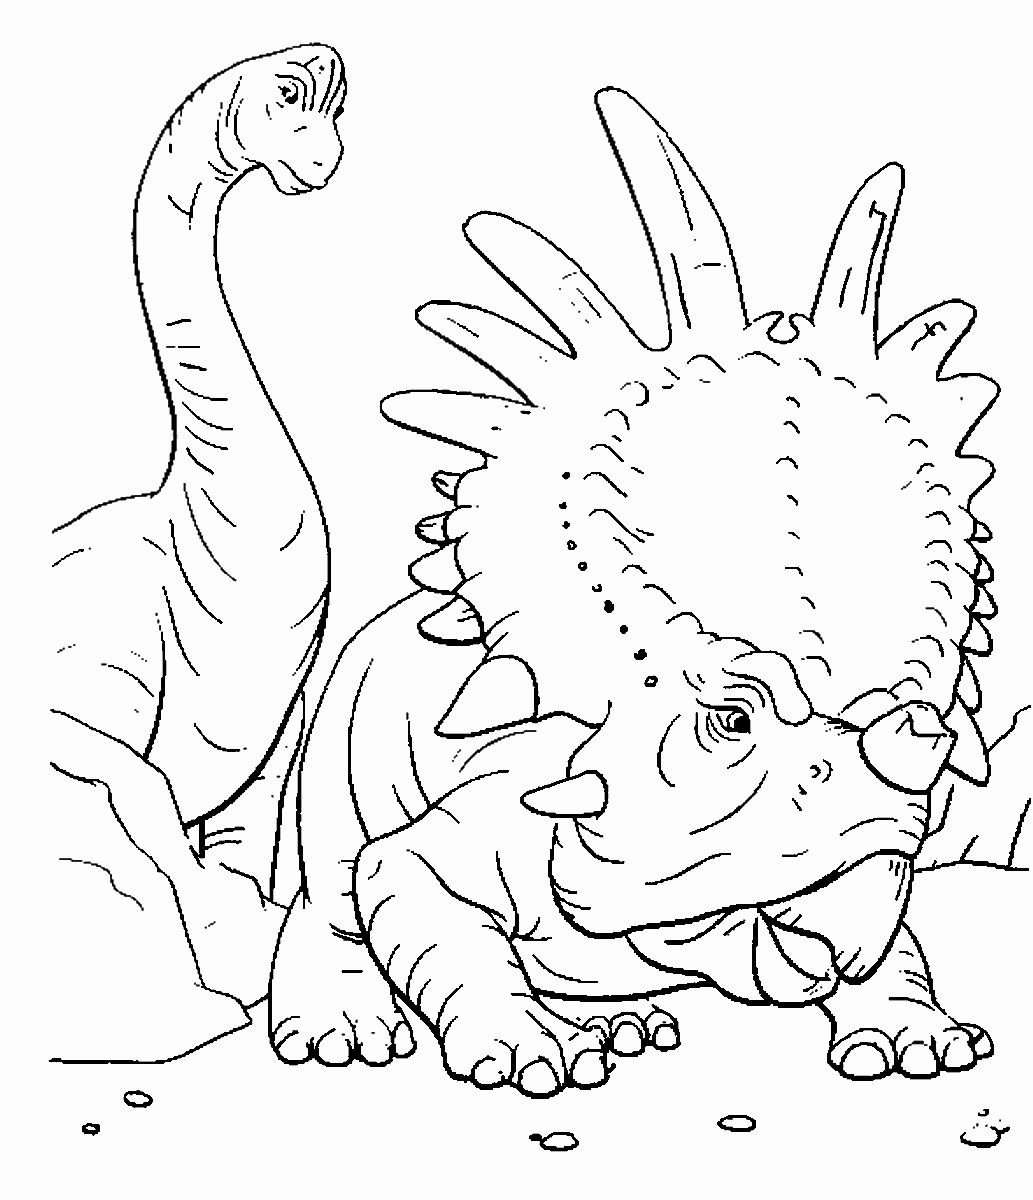 jurassic park dinosaur coloring pages jurassic park dinosaur coloring pages dinosaur park coloring pages jurassic